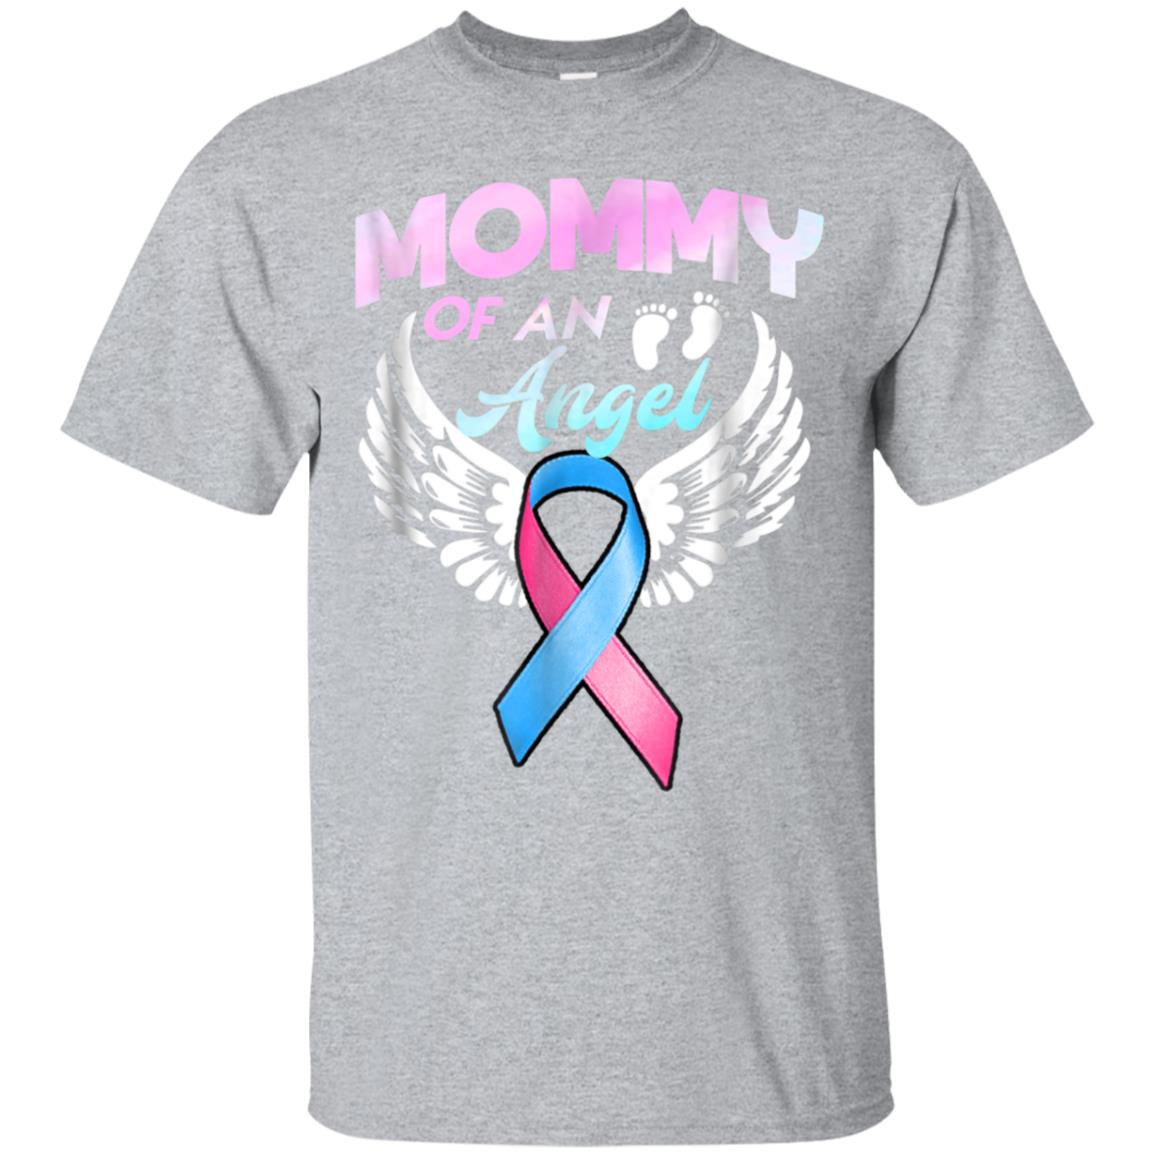 Angel Mommy T-Shirt. Miscarriage Awareness Infant Loss Tee 99promocode